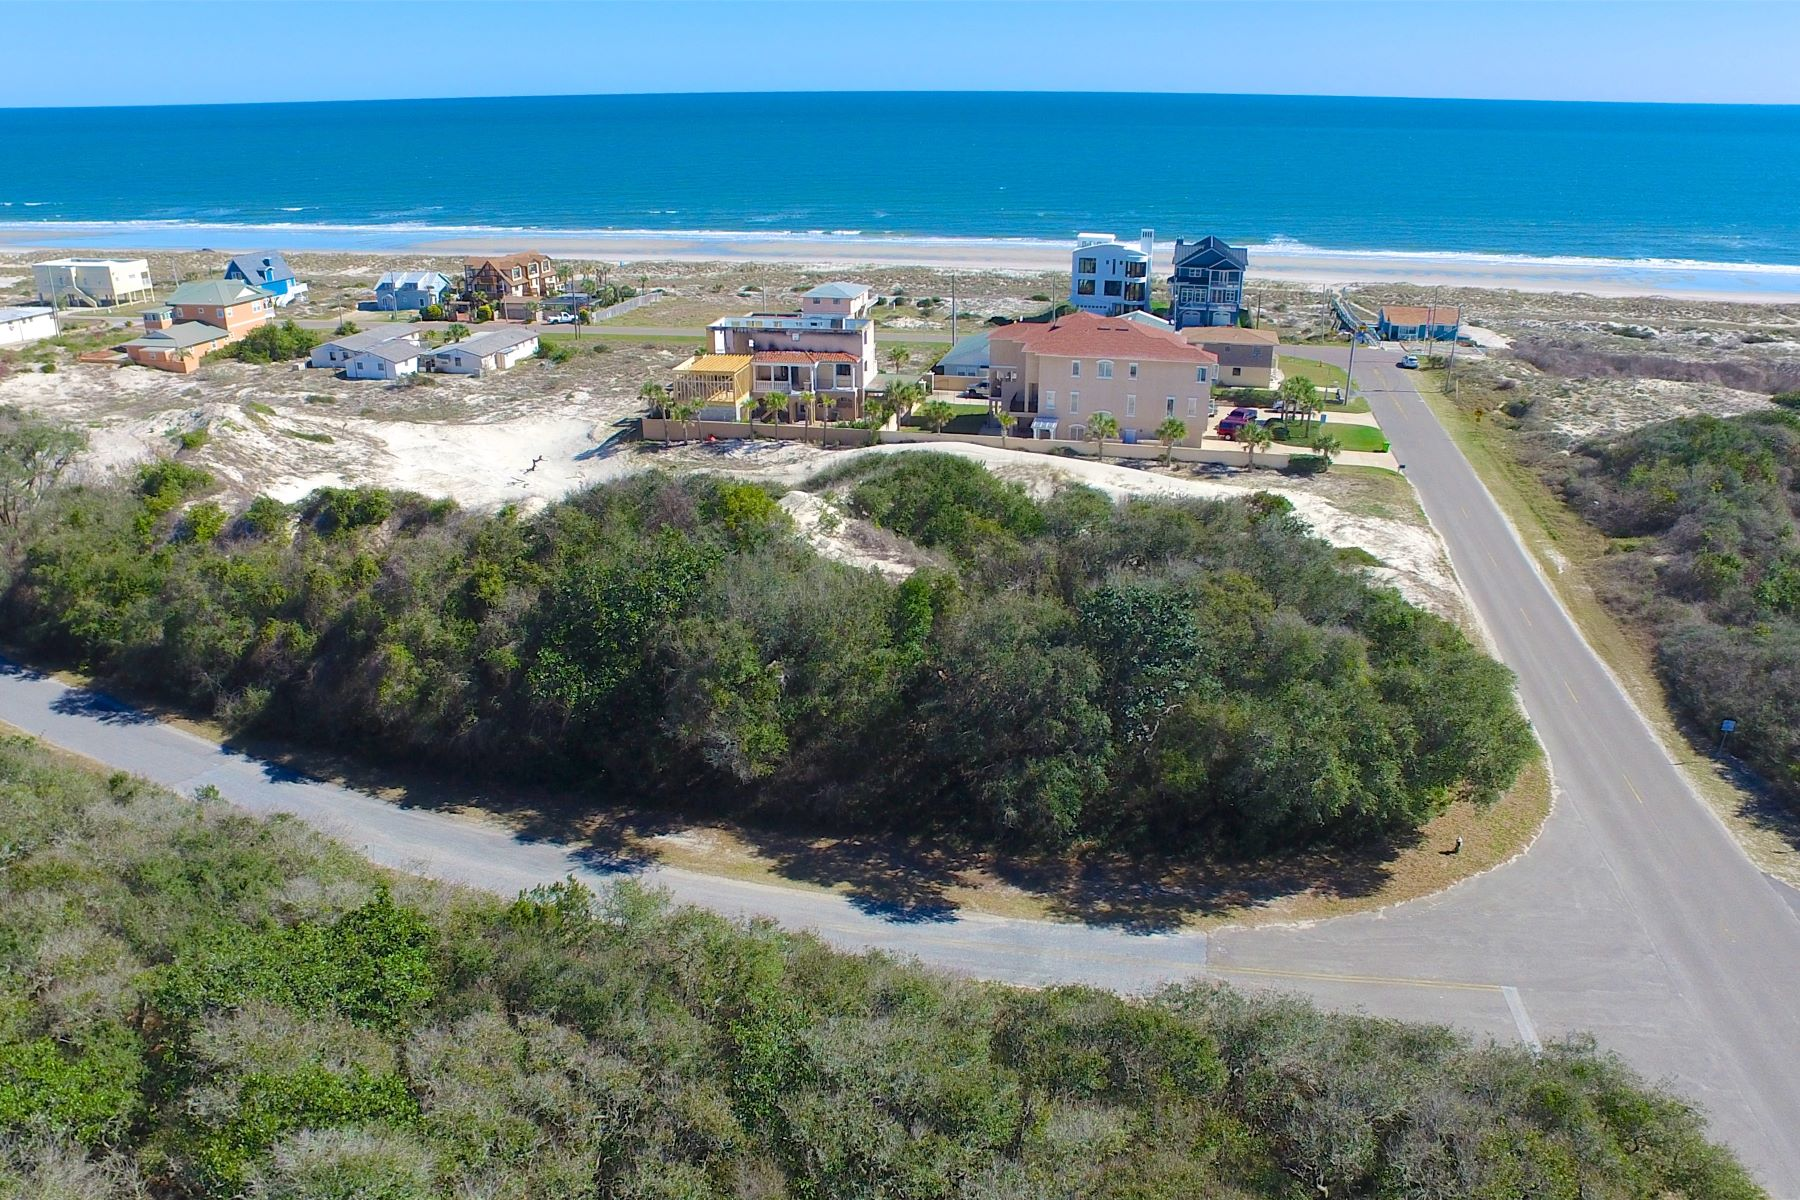 Land for Active at Lots 4, 5 & 6 Ocean Blvd Lots 4,5 & 6 Ocean Boulevard Amelia Island, Florida 32034 United States